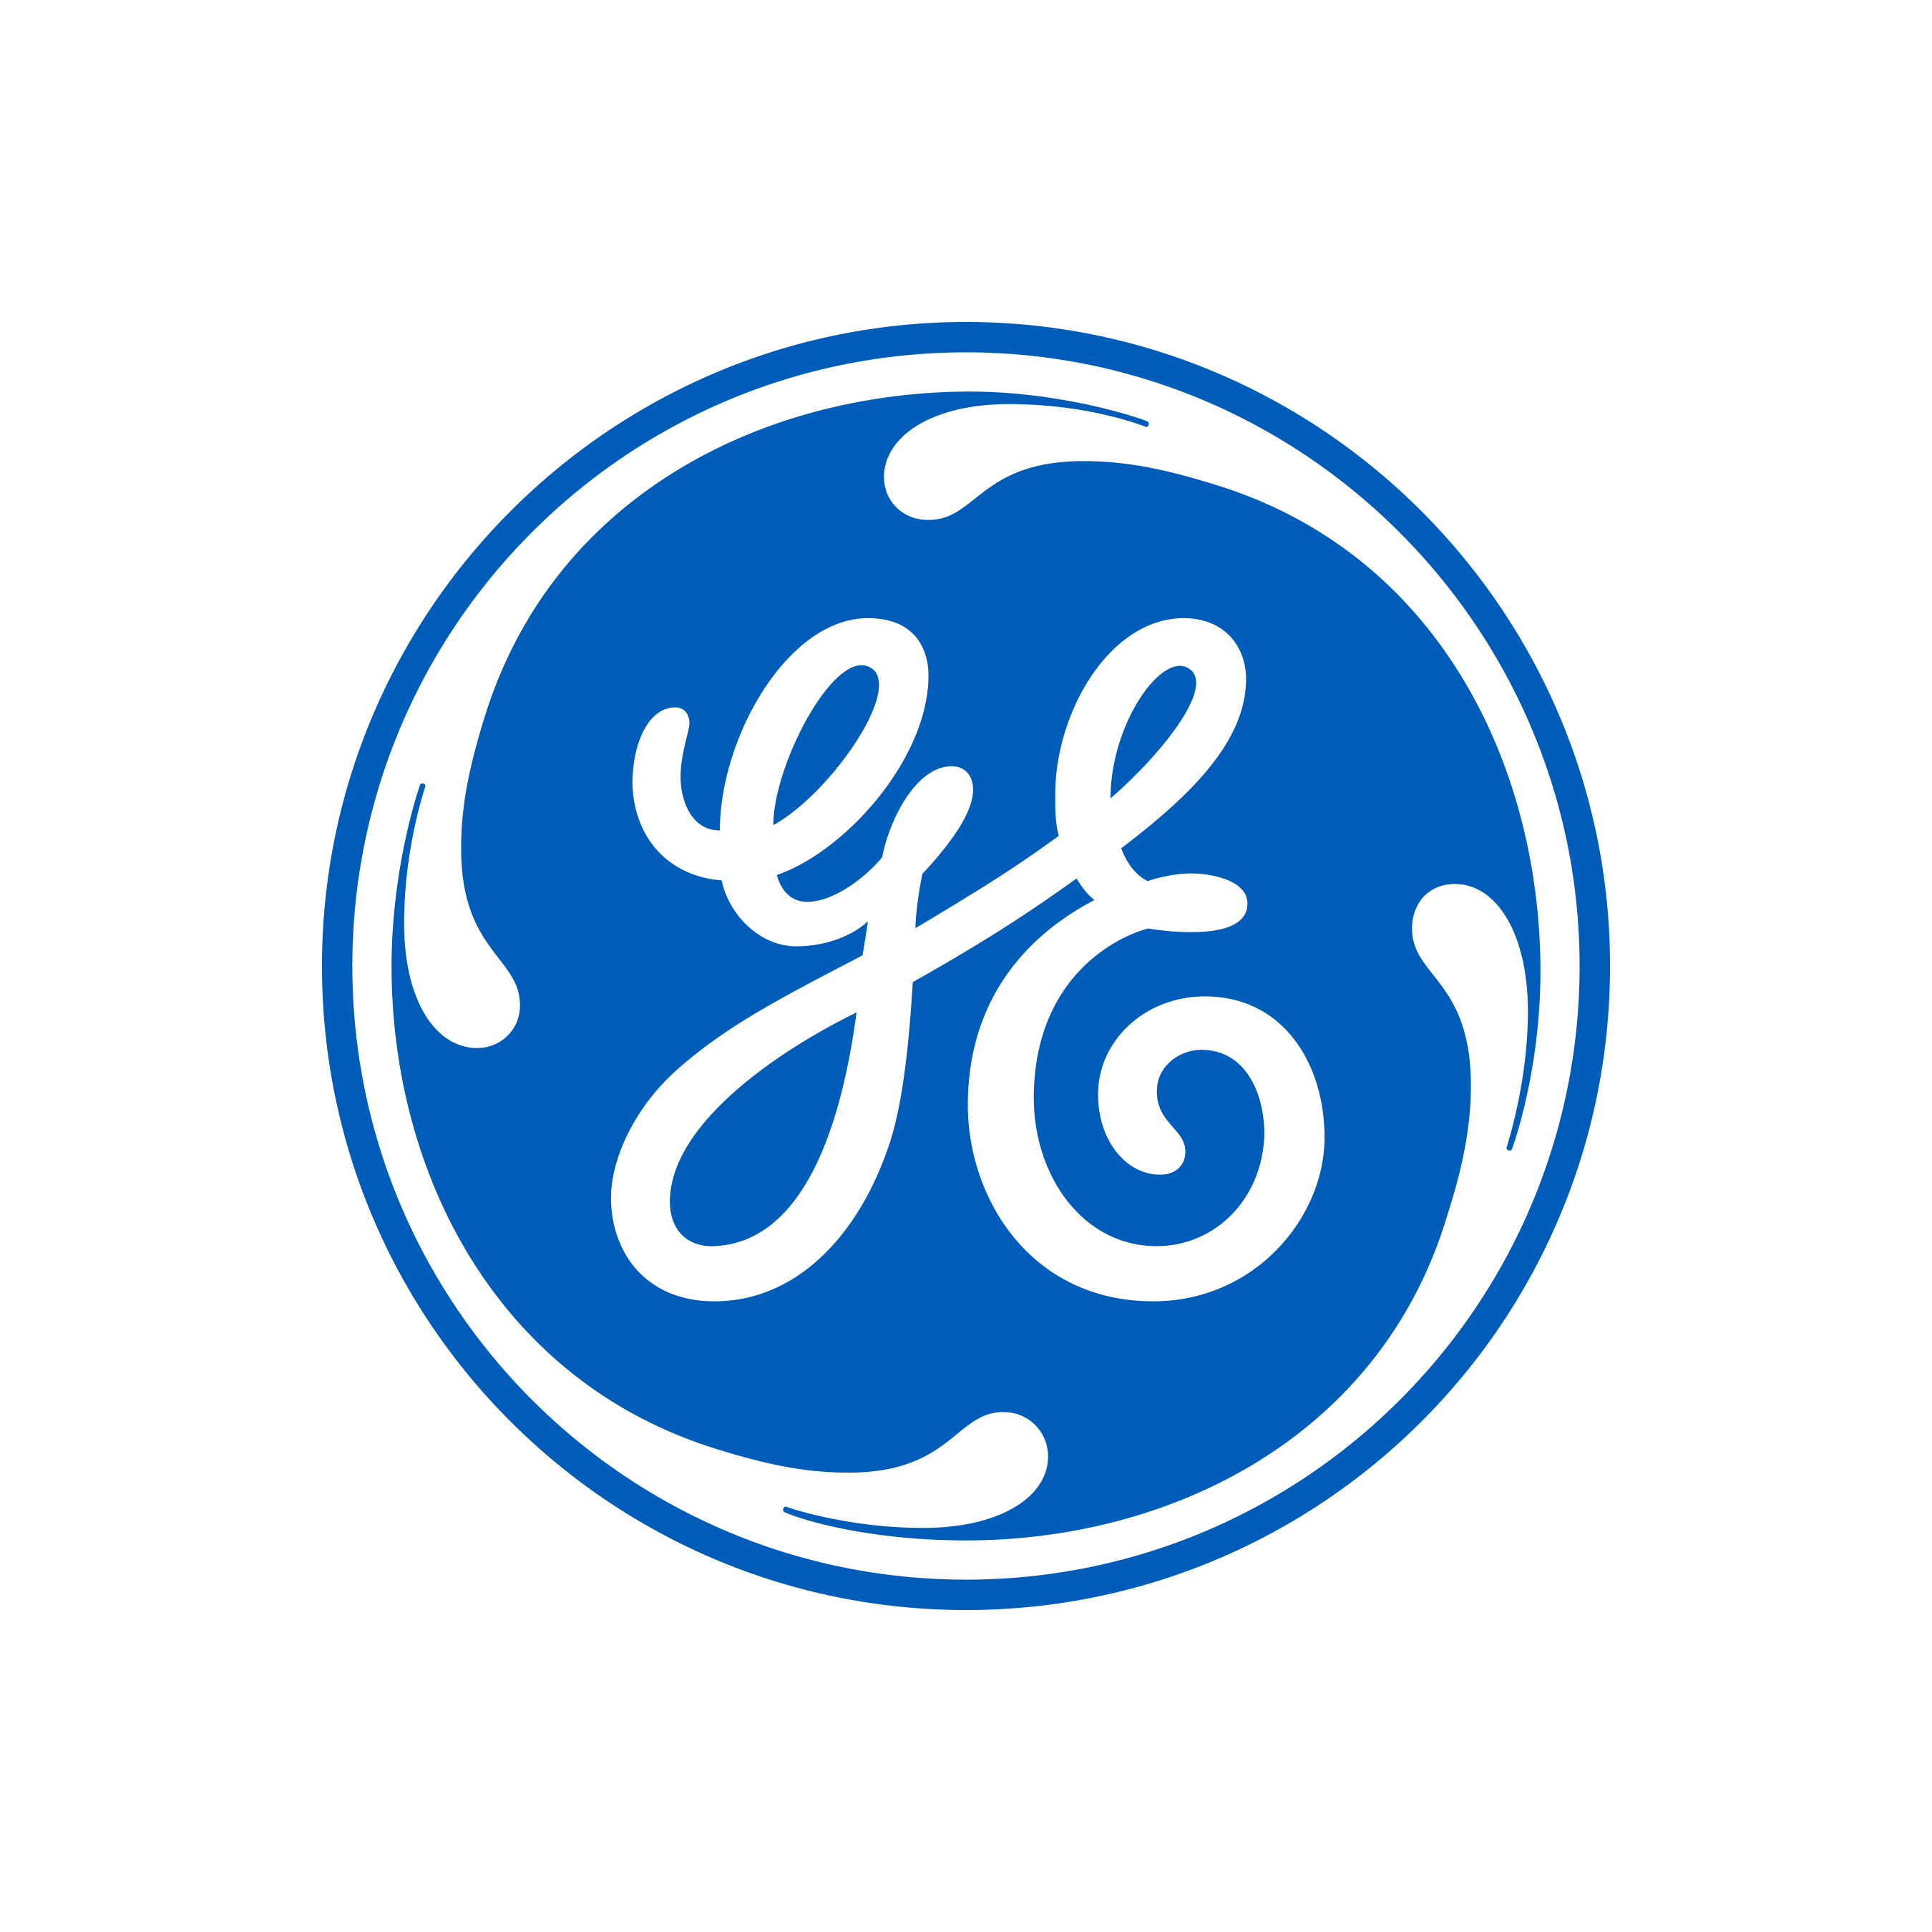 General Electric Global Services Gmbh